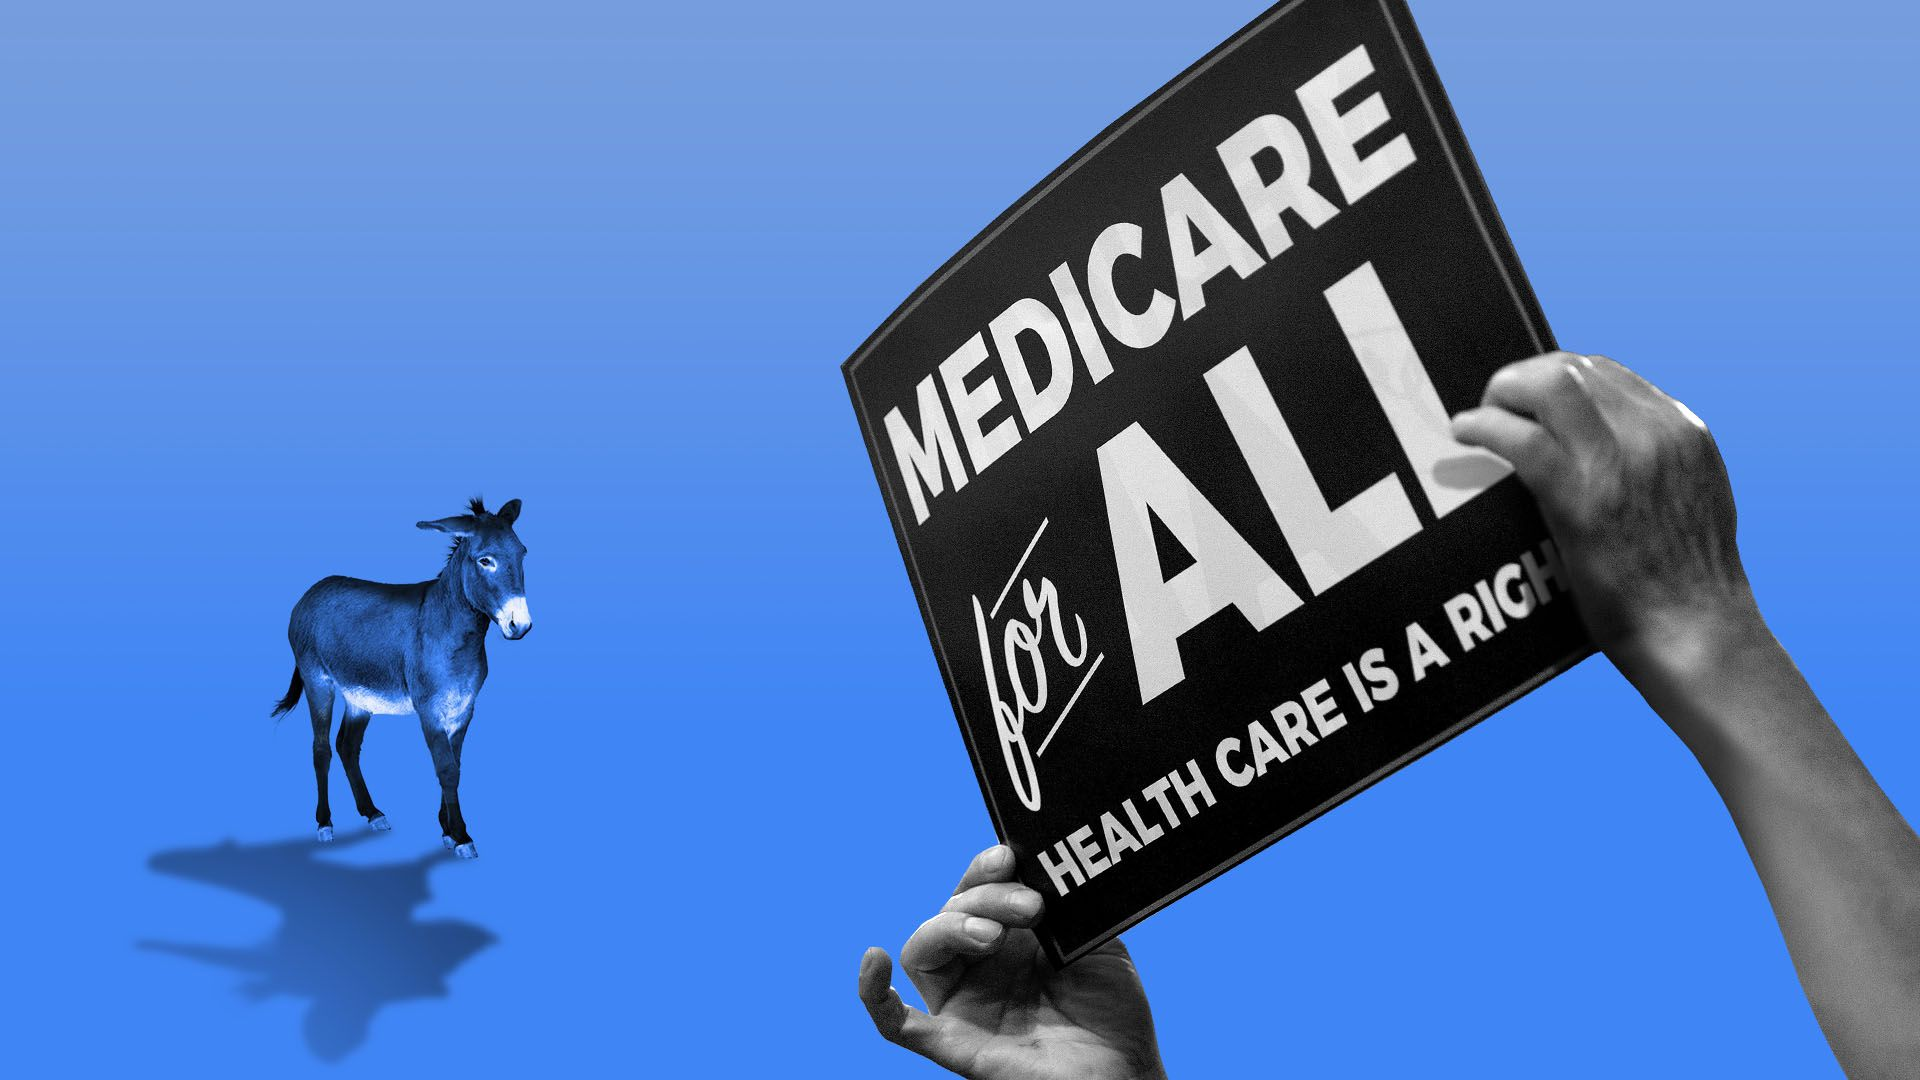 Illustration of a small donkey faced with a giant Medicare-for-all protestor